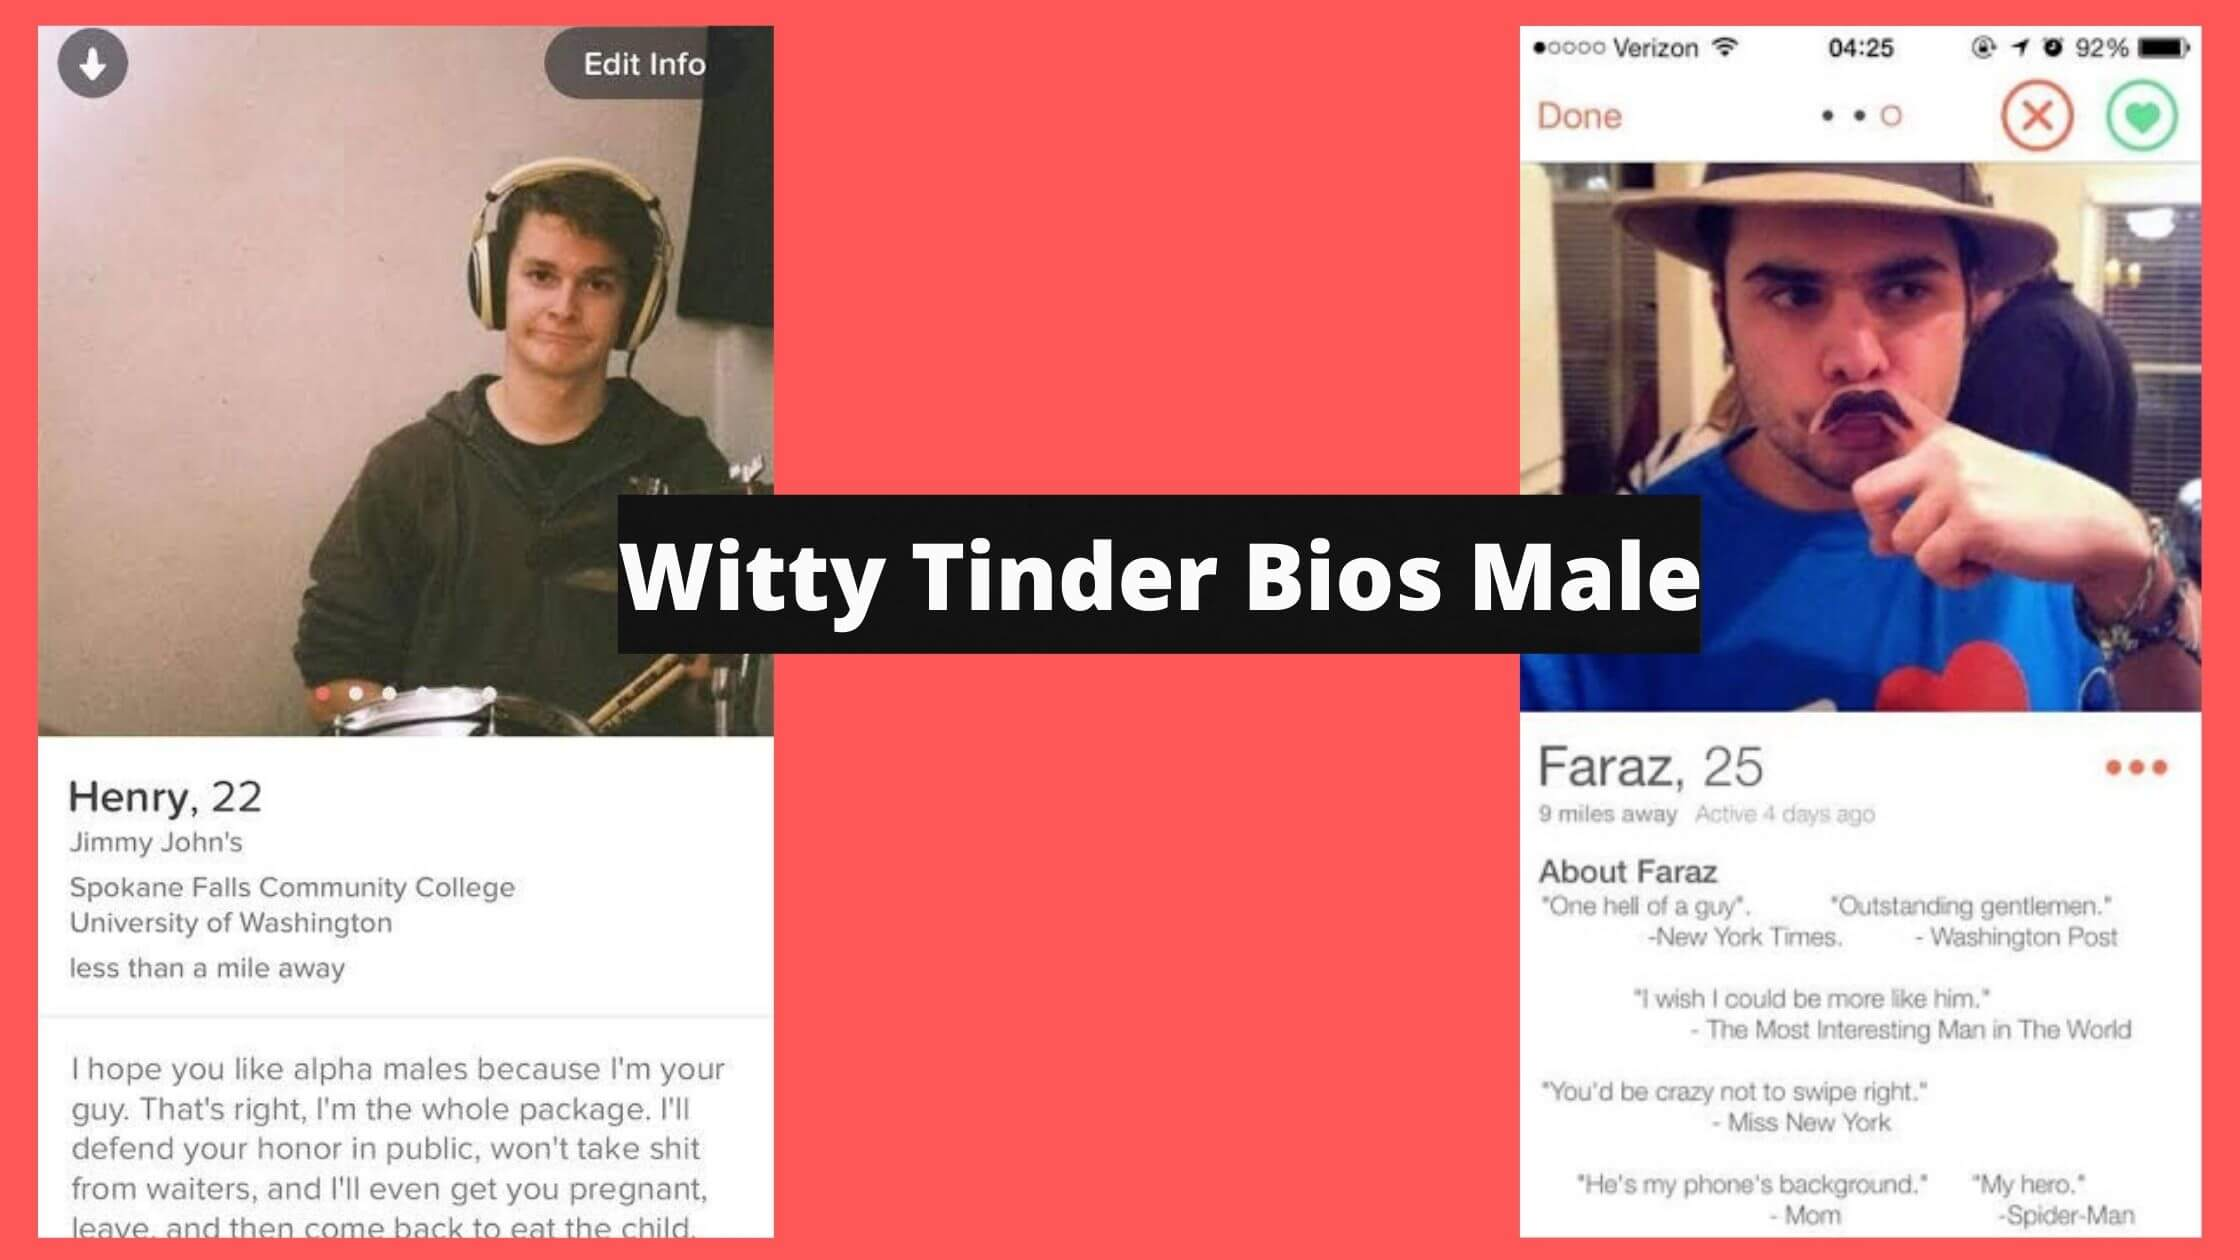 Witty Tinder Bios Male